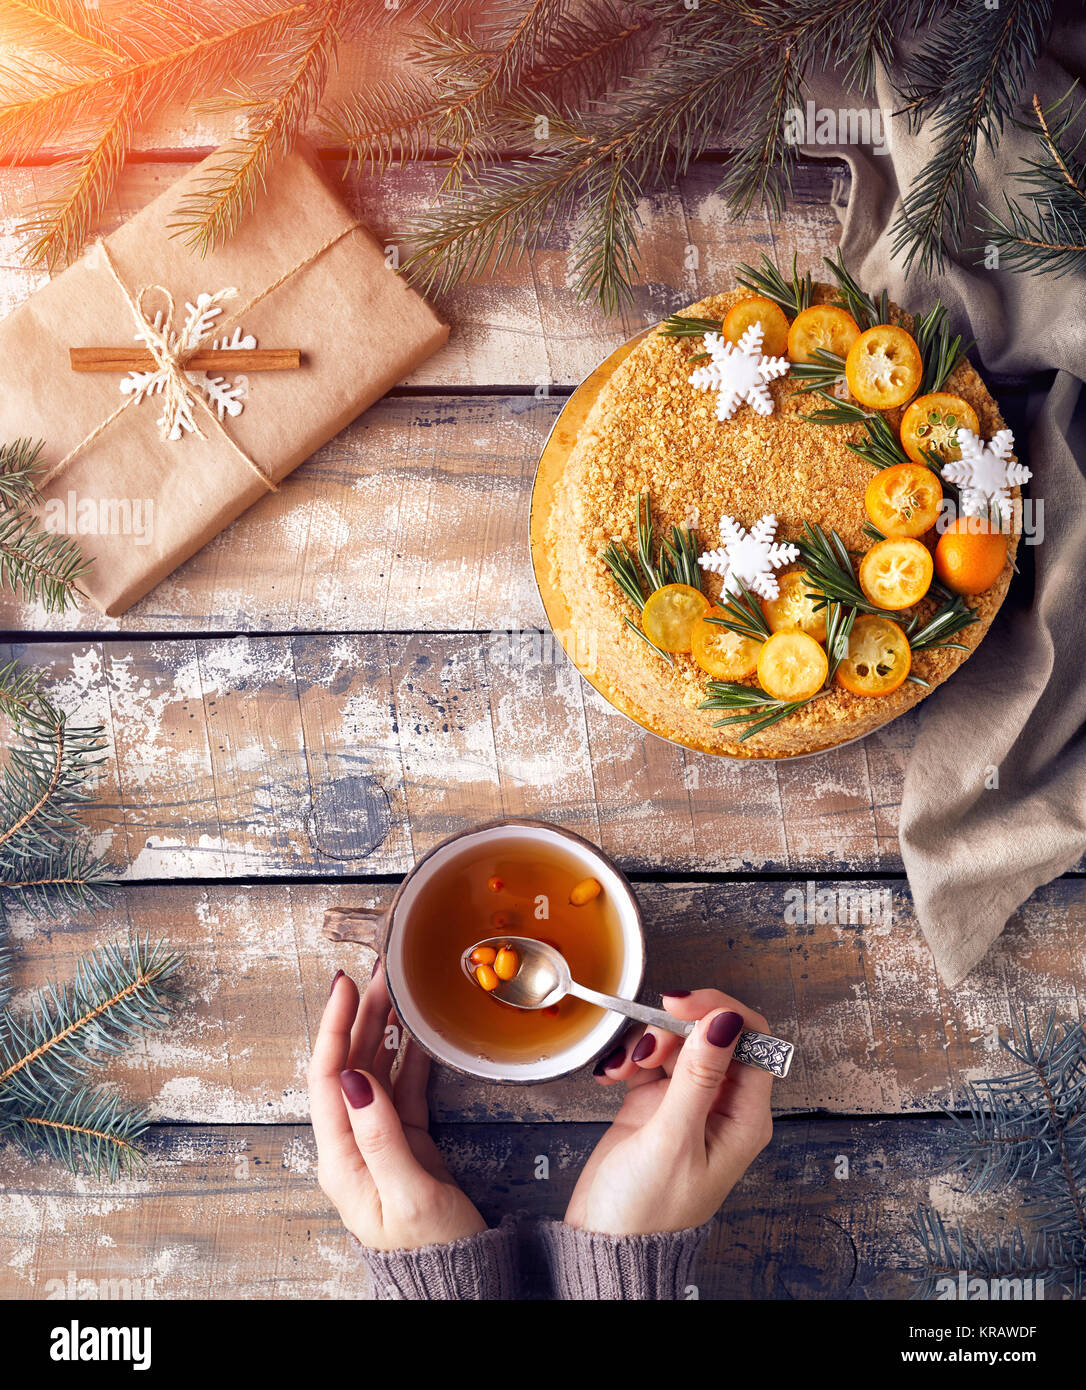 Christmas Honey cake on the table. Woman holding tea with berry near decorated present at breakfast. Stock Photo